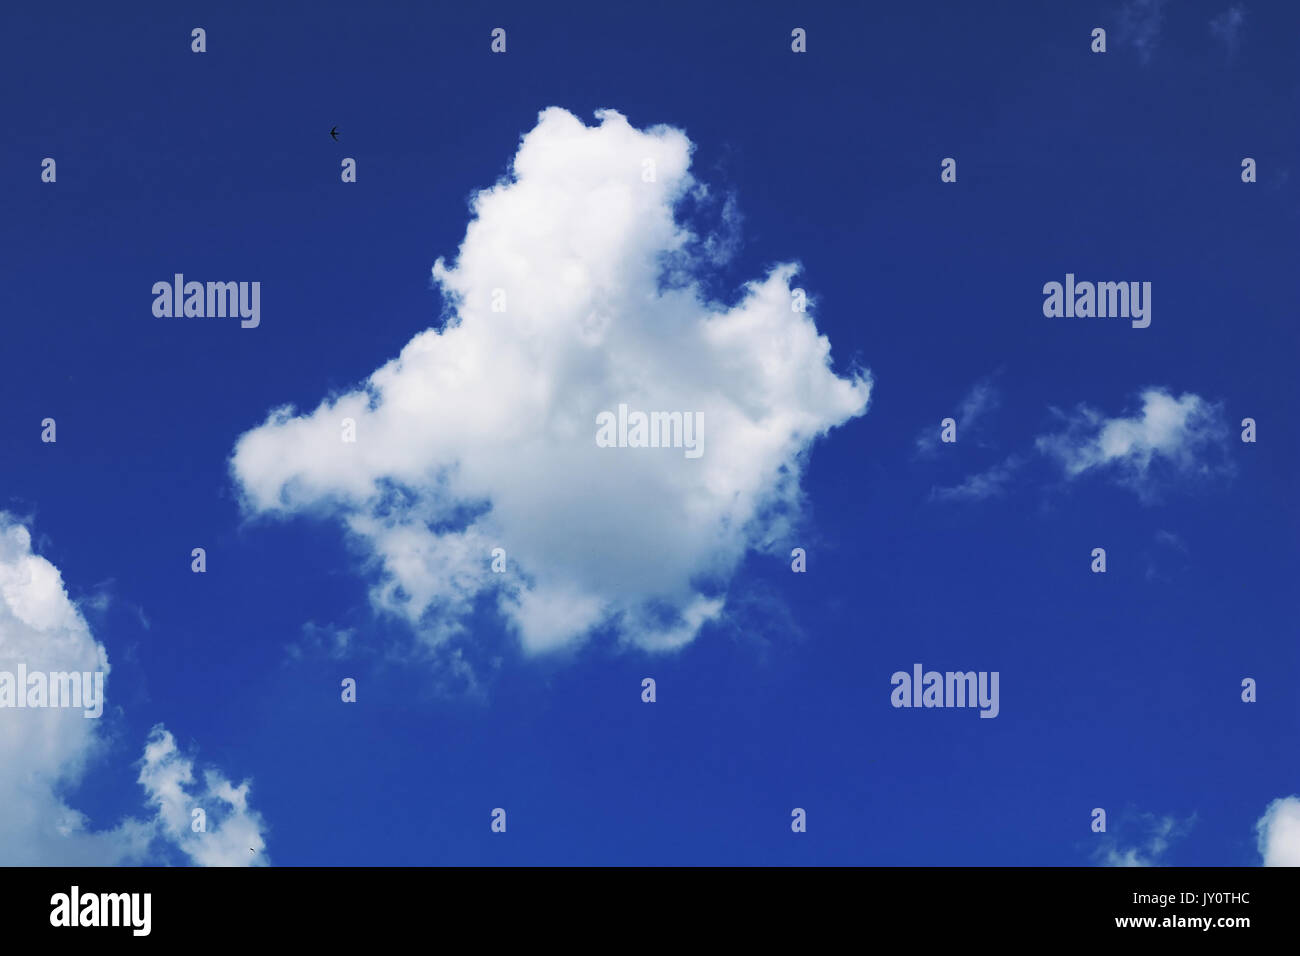 Cloud Against The Blue Sky - Stock Image